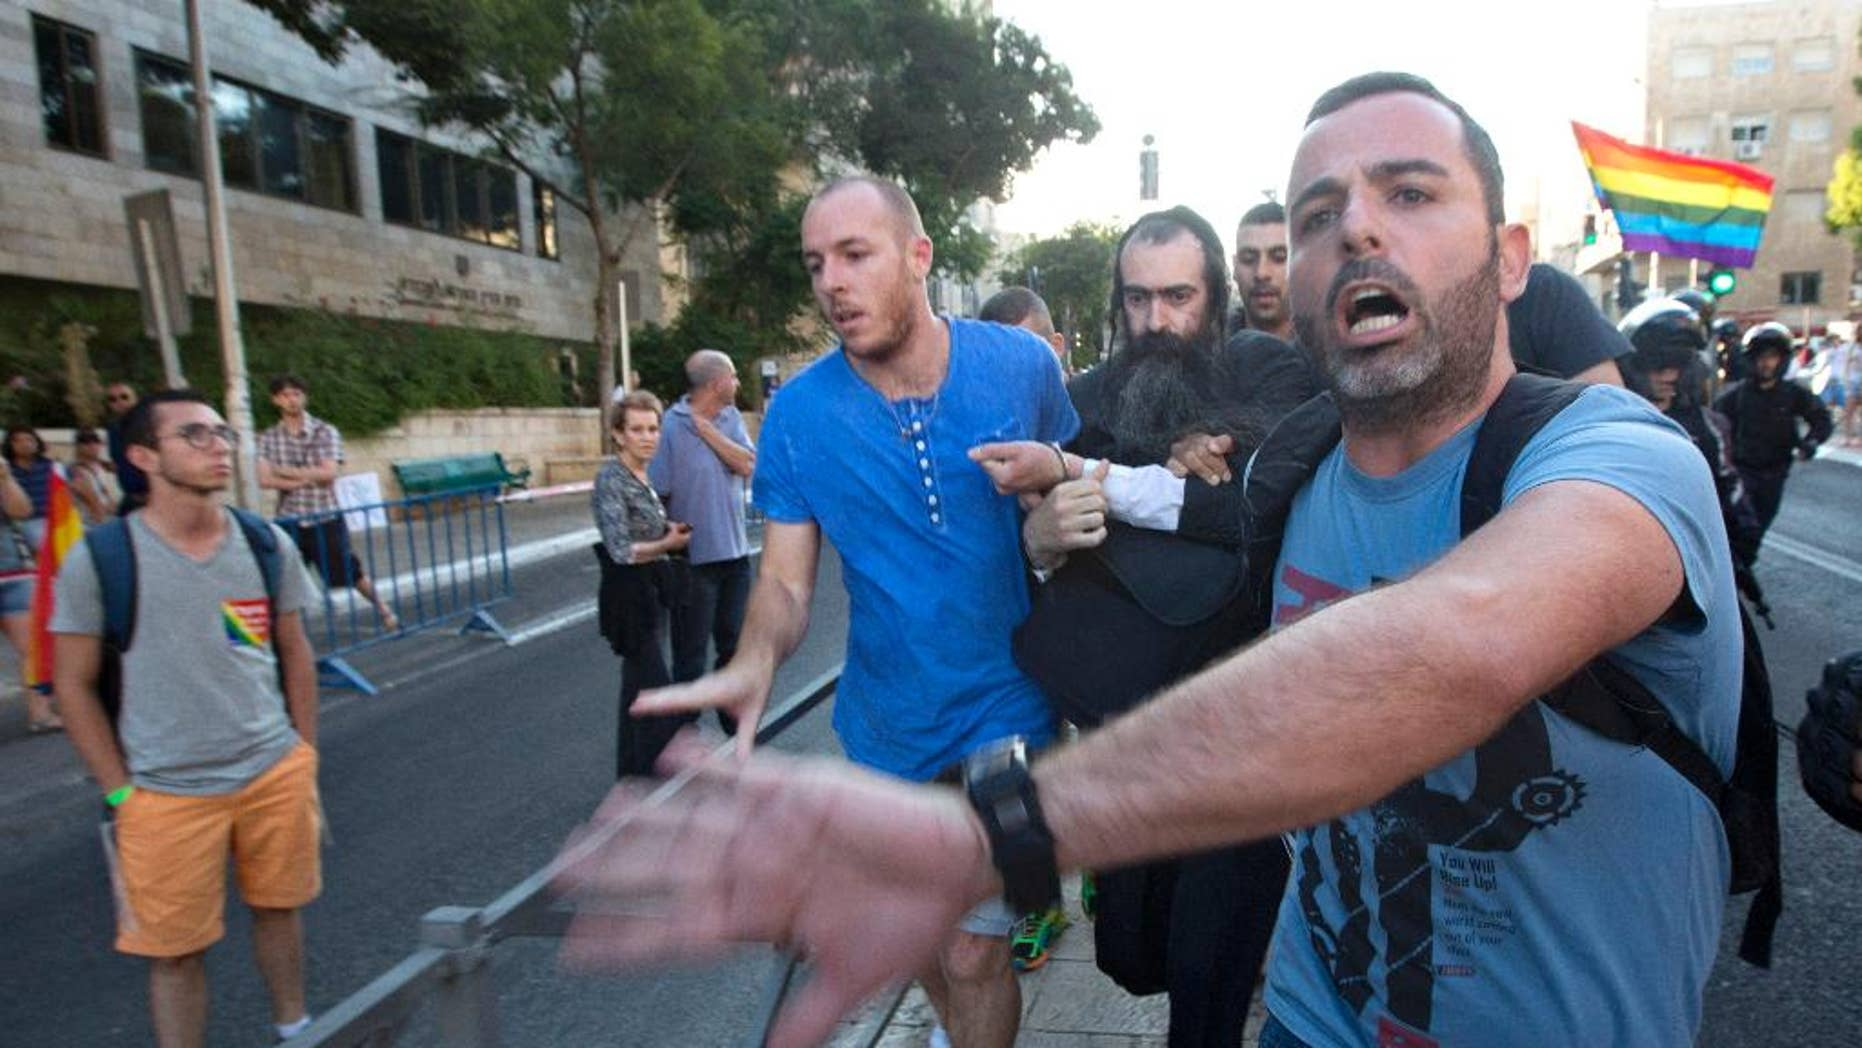 FILE - In this July 30, 2015 file photo, plainclothes Israeli police detain Yishai Schlissel, an ultra-Orthodox Jew, after he attacked people with a knife during a Gay Pride parade, in central Jerusalem. One of them, 16-year-old Shira Banki, later died of her wounds. Jerusalem's District Court indicted Schlissel for Banki's murder on Monday, Aug. 24, 2015, along with multiple attempted murder charges for those he wounded. Schlissel, who had been freed from prison weeks earlier after serving a sentence for stabbing several people at the city's pride parade in 2005. (AP Photo/Sebastian Scheiner, File)